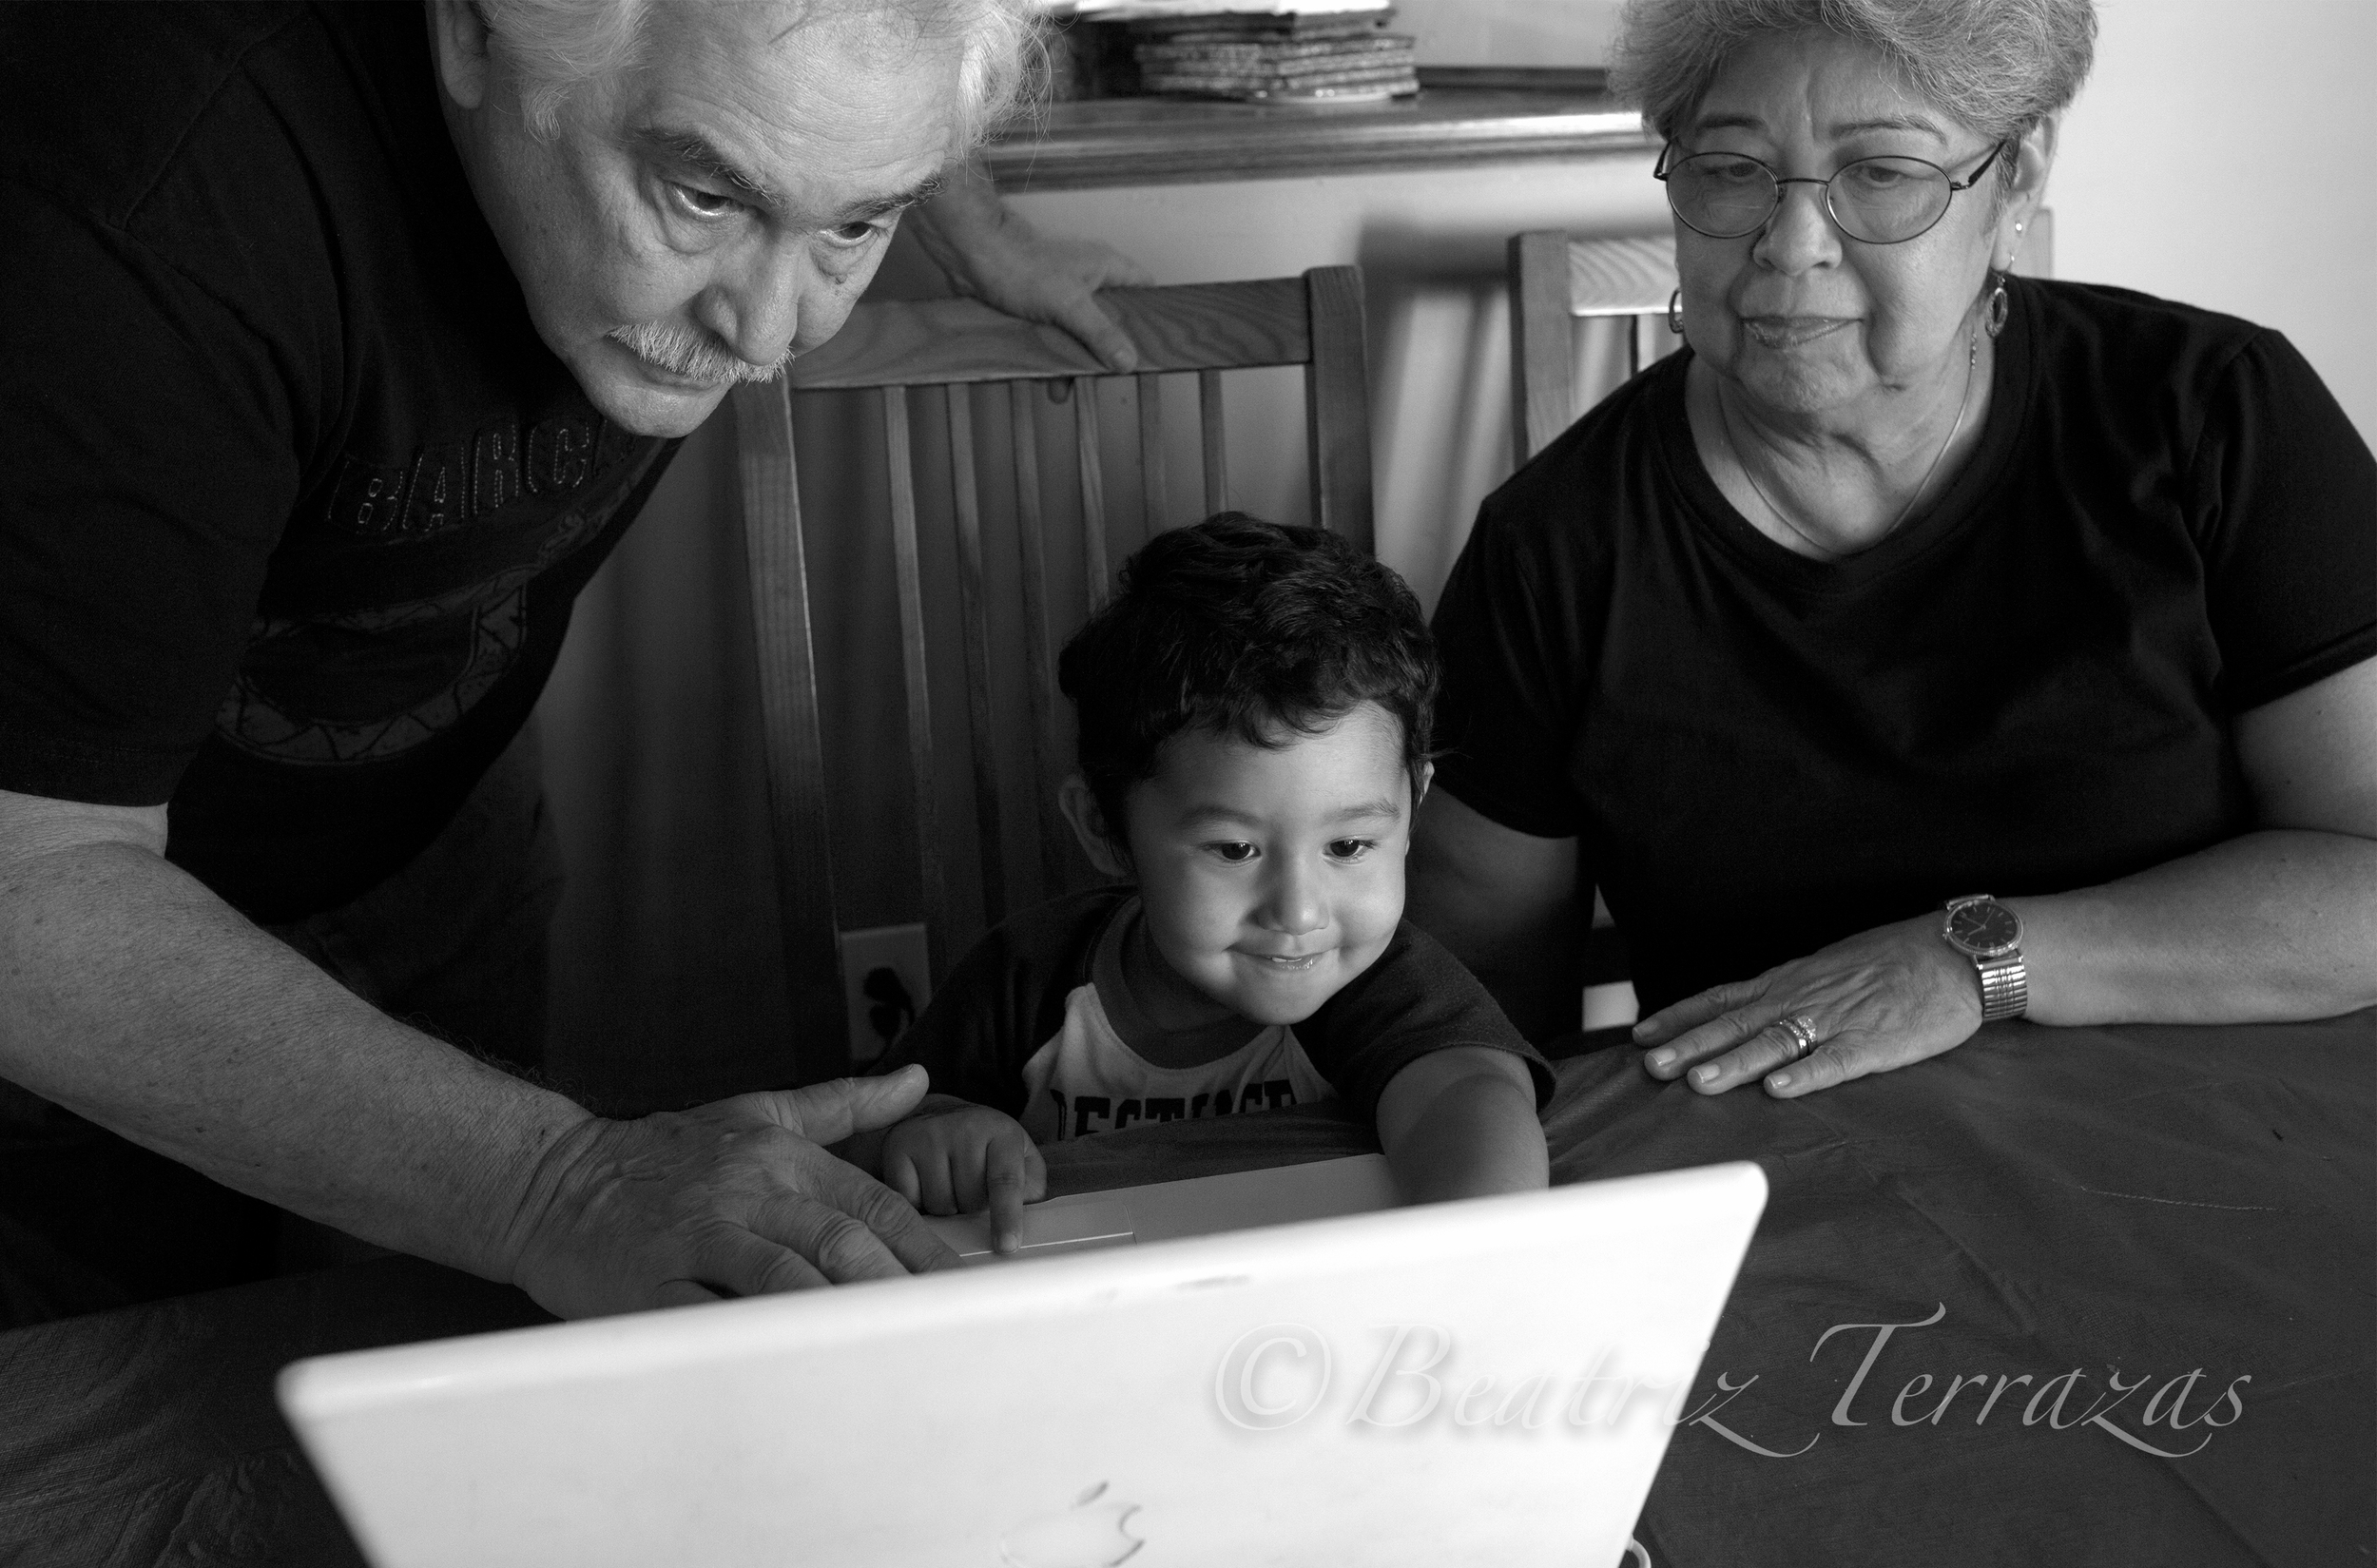 Rita (right) with her husband Michael Utt (left) and their great-grandson, also named Michael.